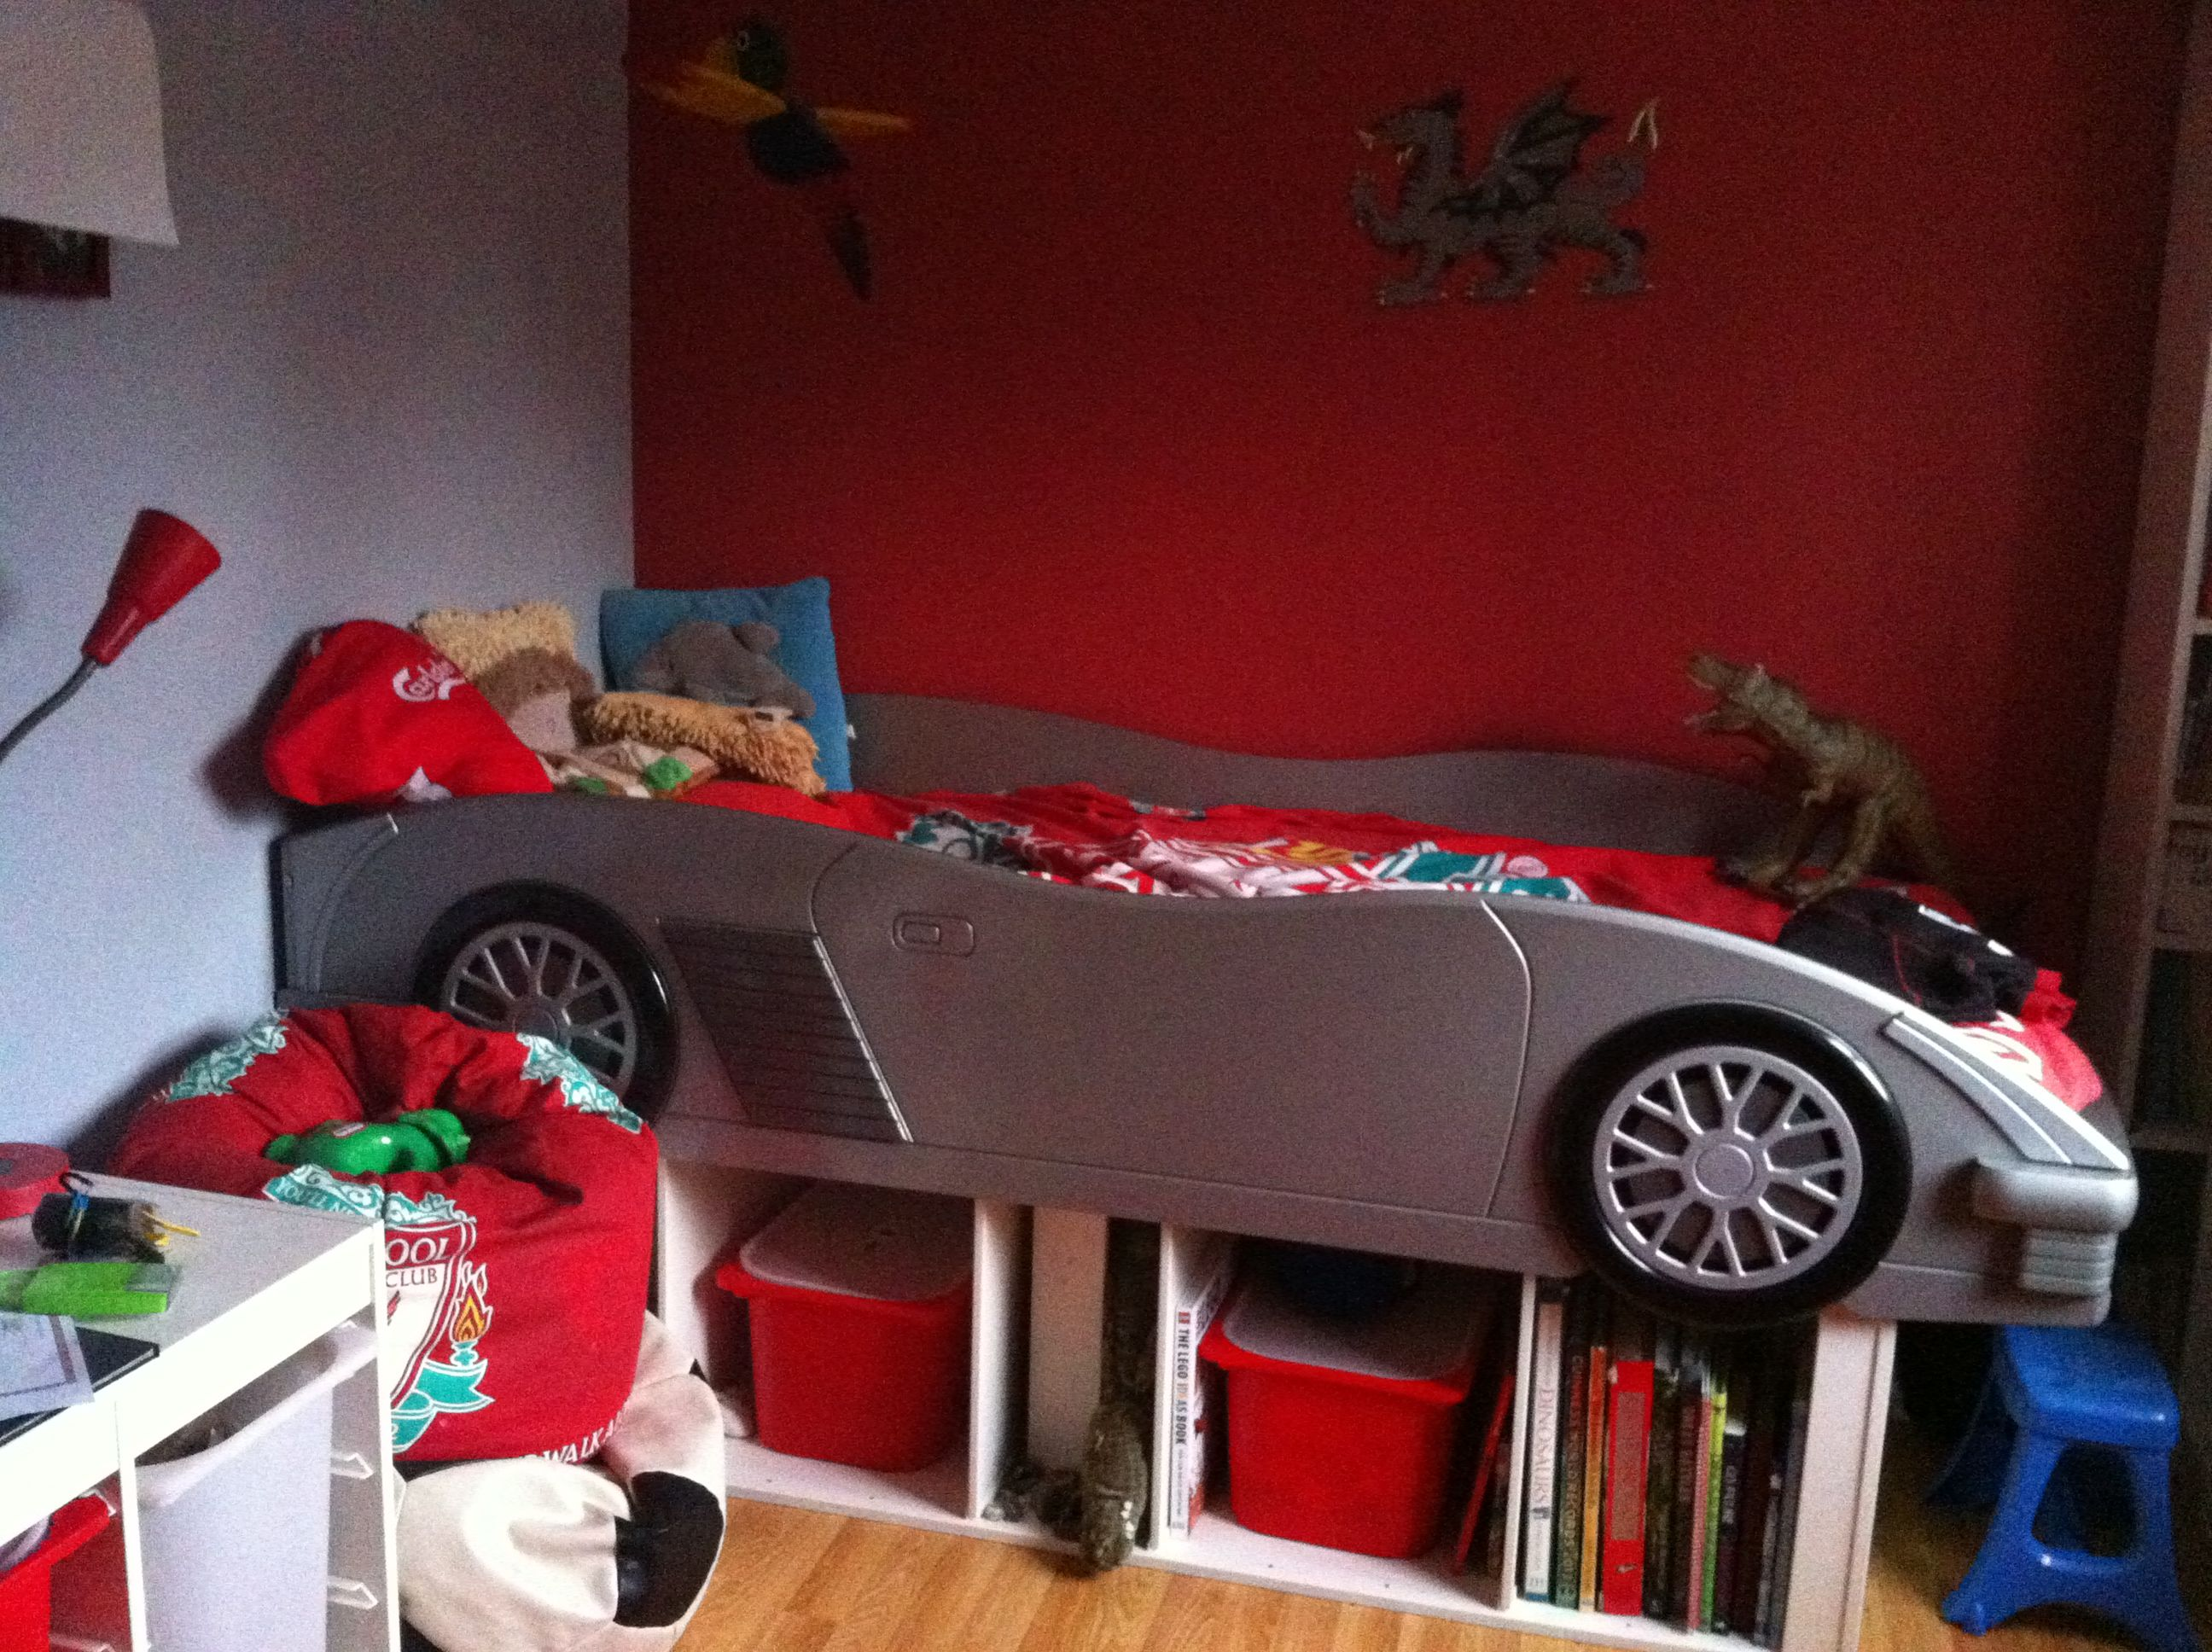 Pimped Up Car Bed Using Ikea Toy Storage Units For Under Bed